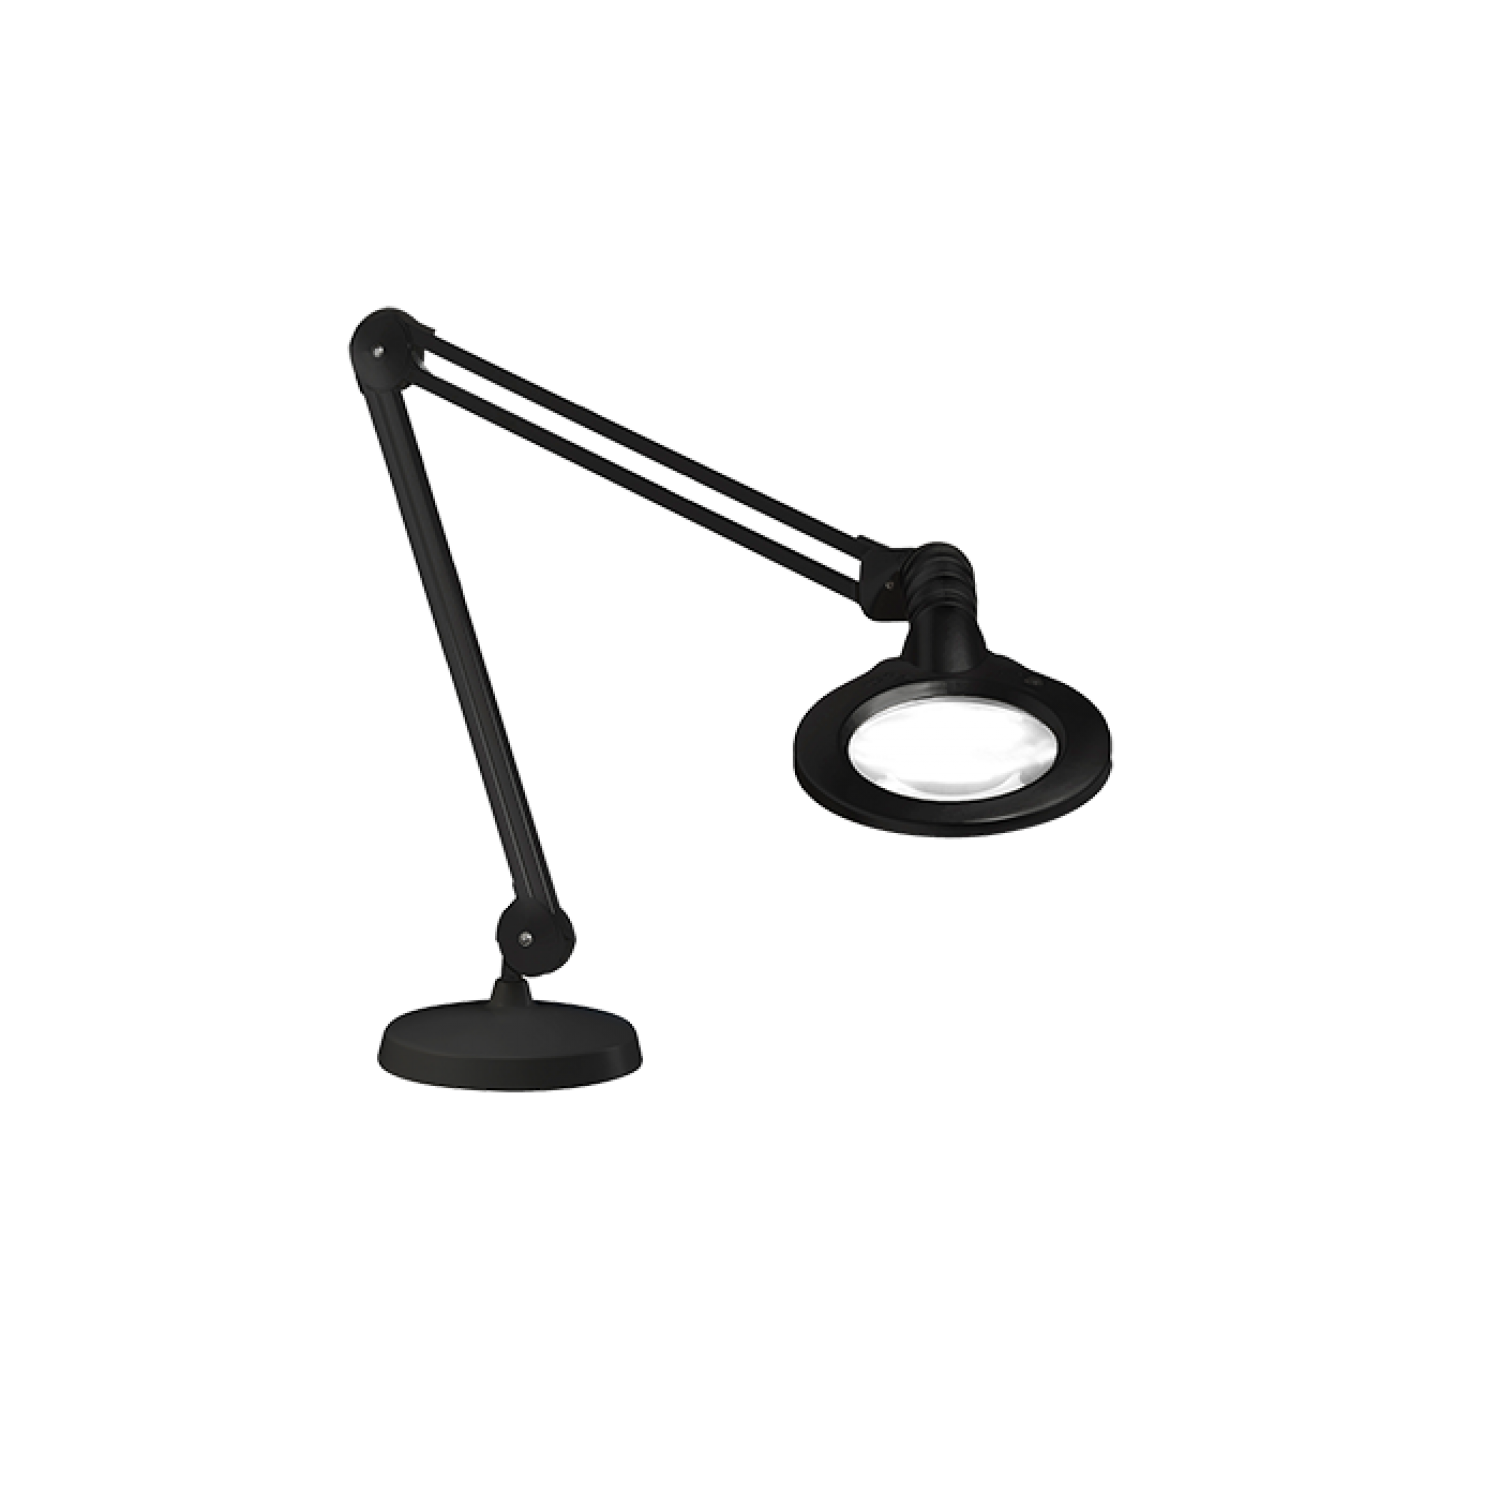 kfm_led_black_base